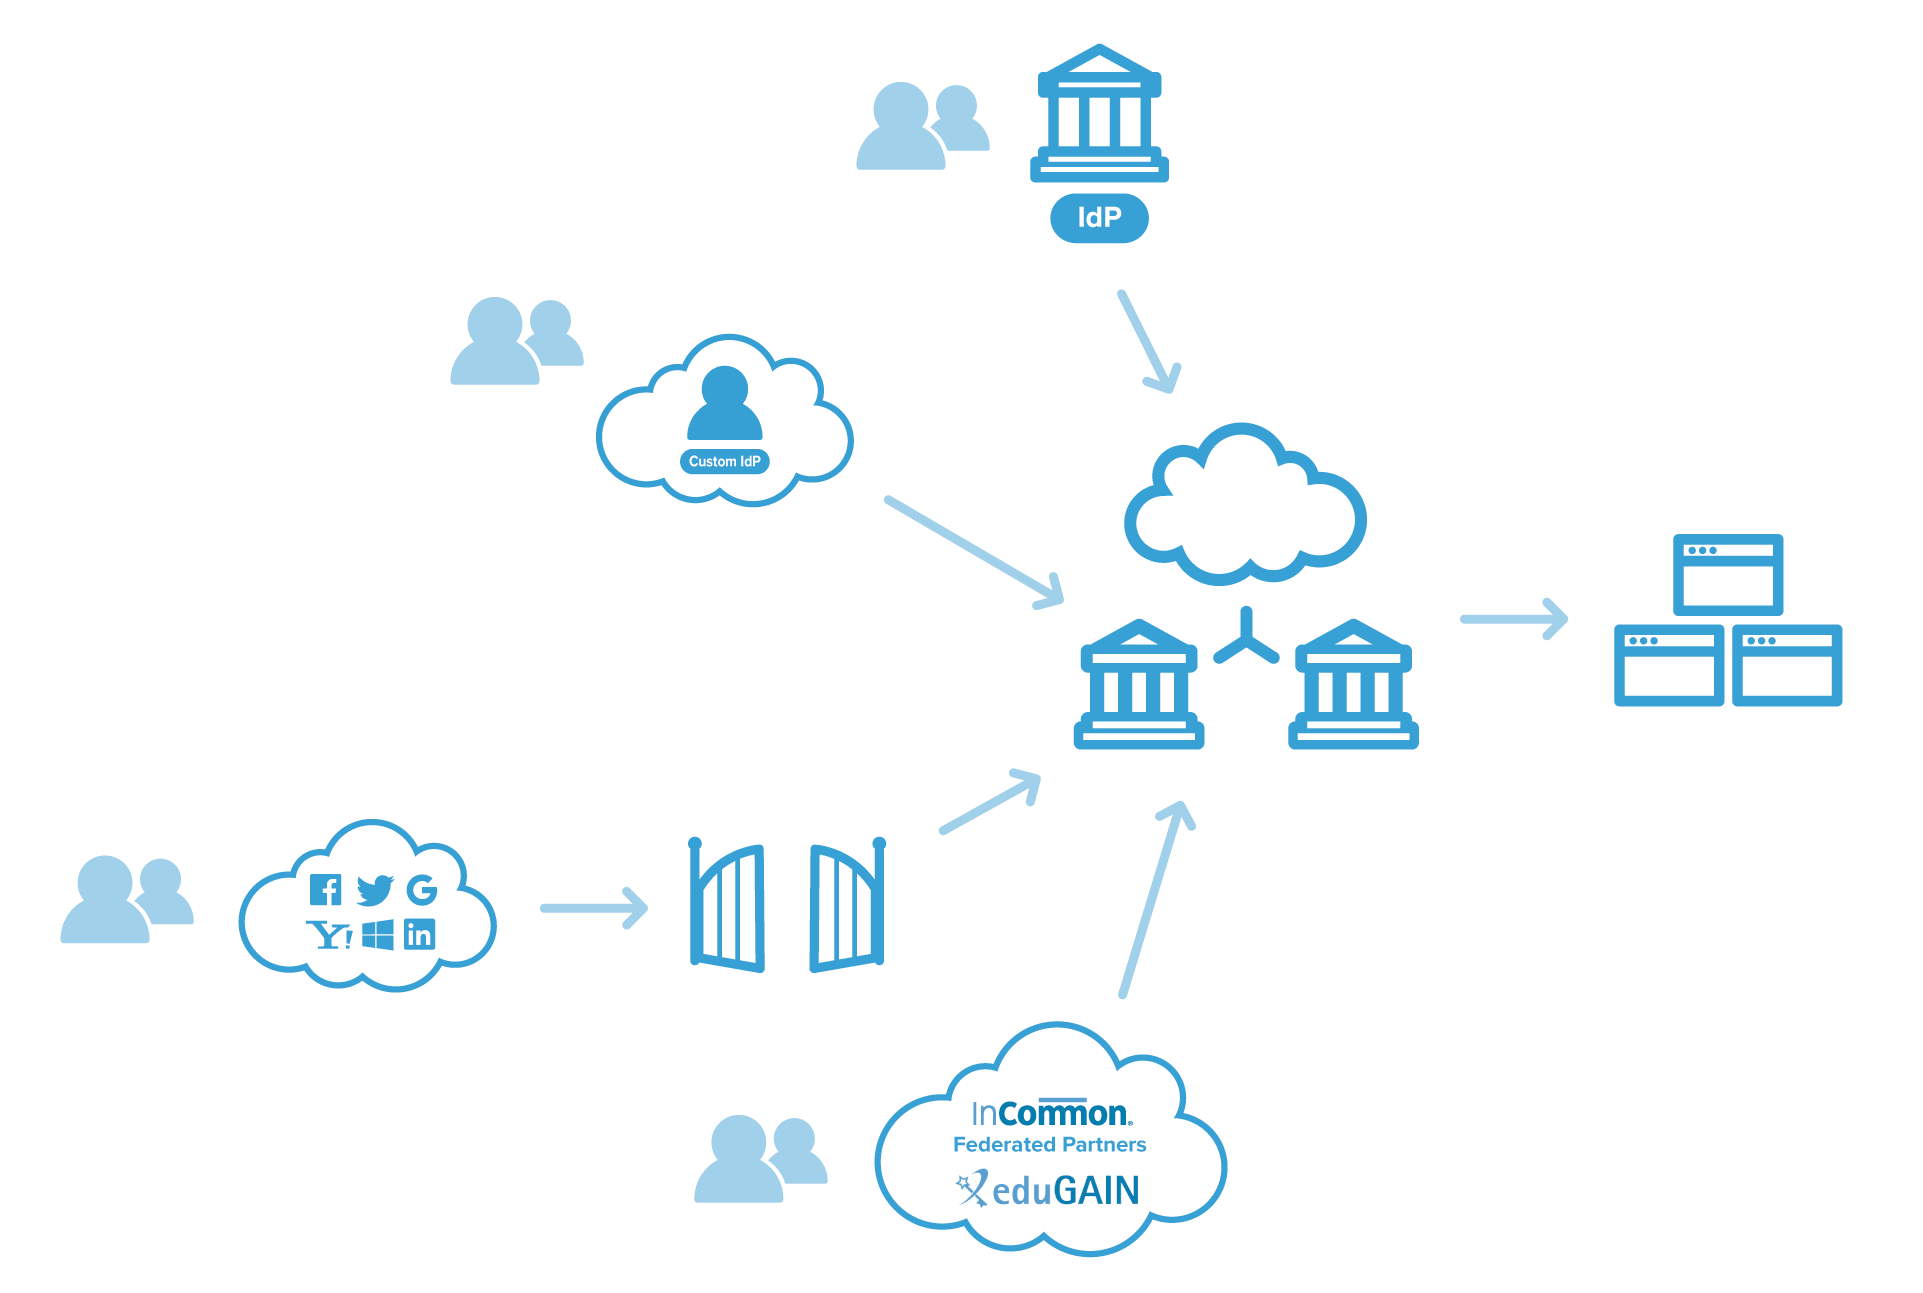 infographic-identity-provider.png